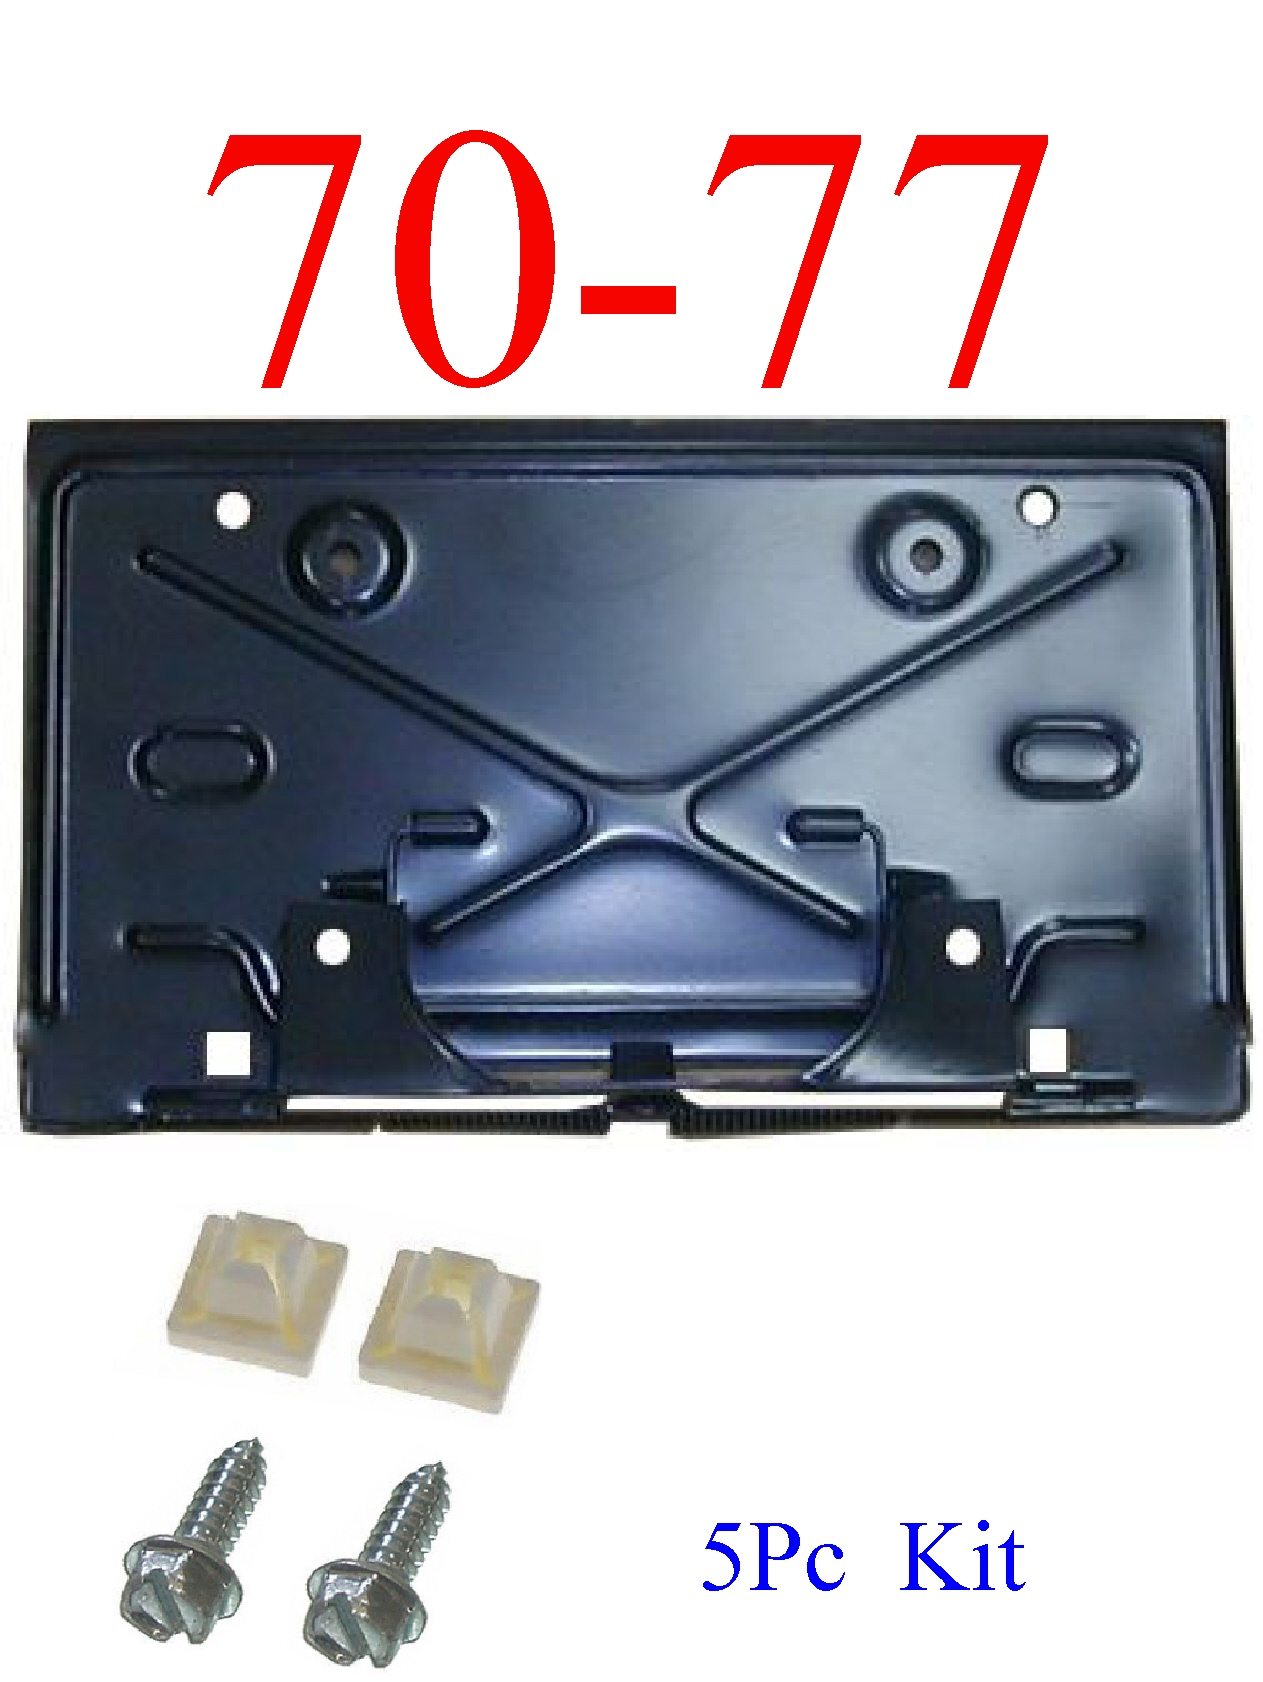 70-77 Chevy Camaro 5Pc Rear Fold Down License Plate Kit